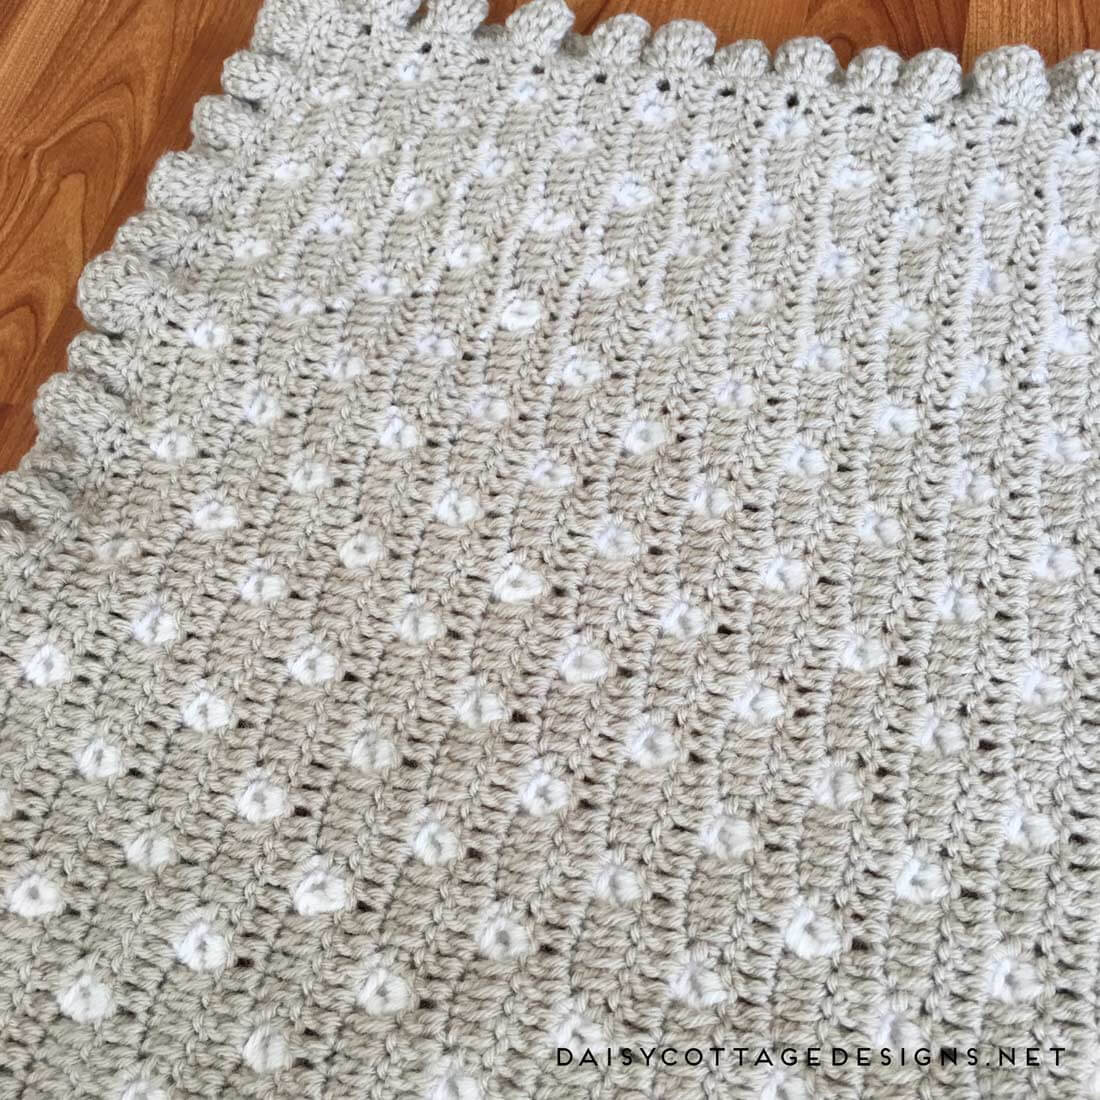 Crochet Stitches for Baby Blankets Inspirational Crochet Baby Blanket Pattern From Daisy Cottage Designs Of Amazing 45 Pics Crochet Stitches for Baby Blankets